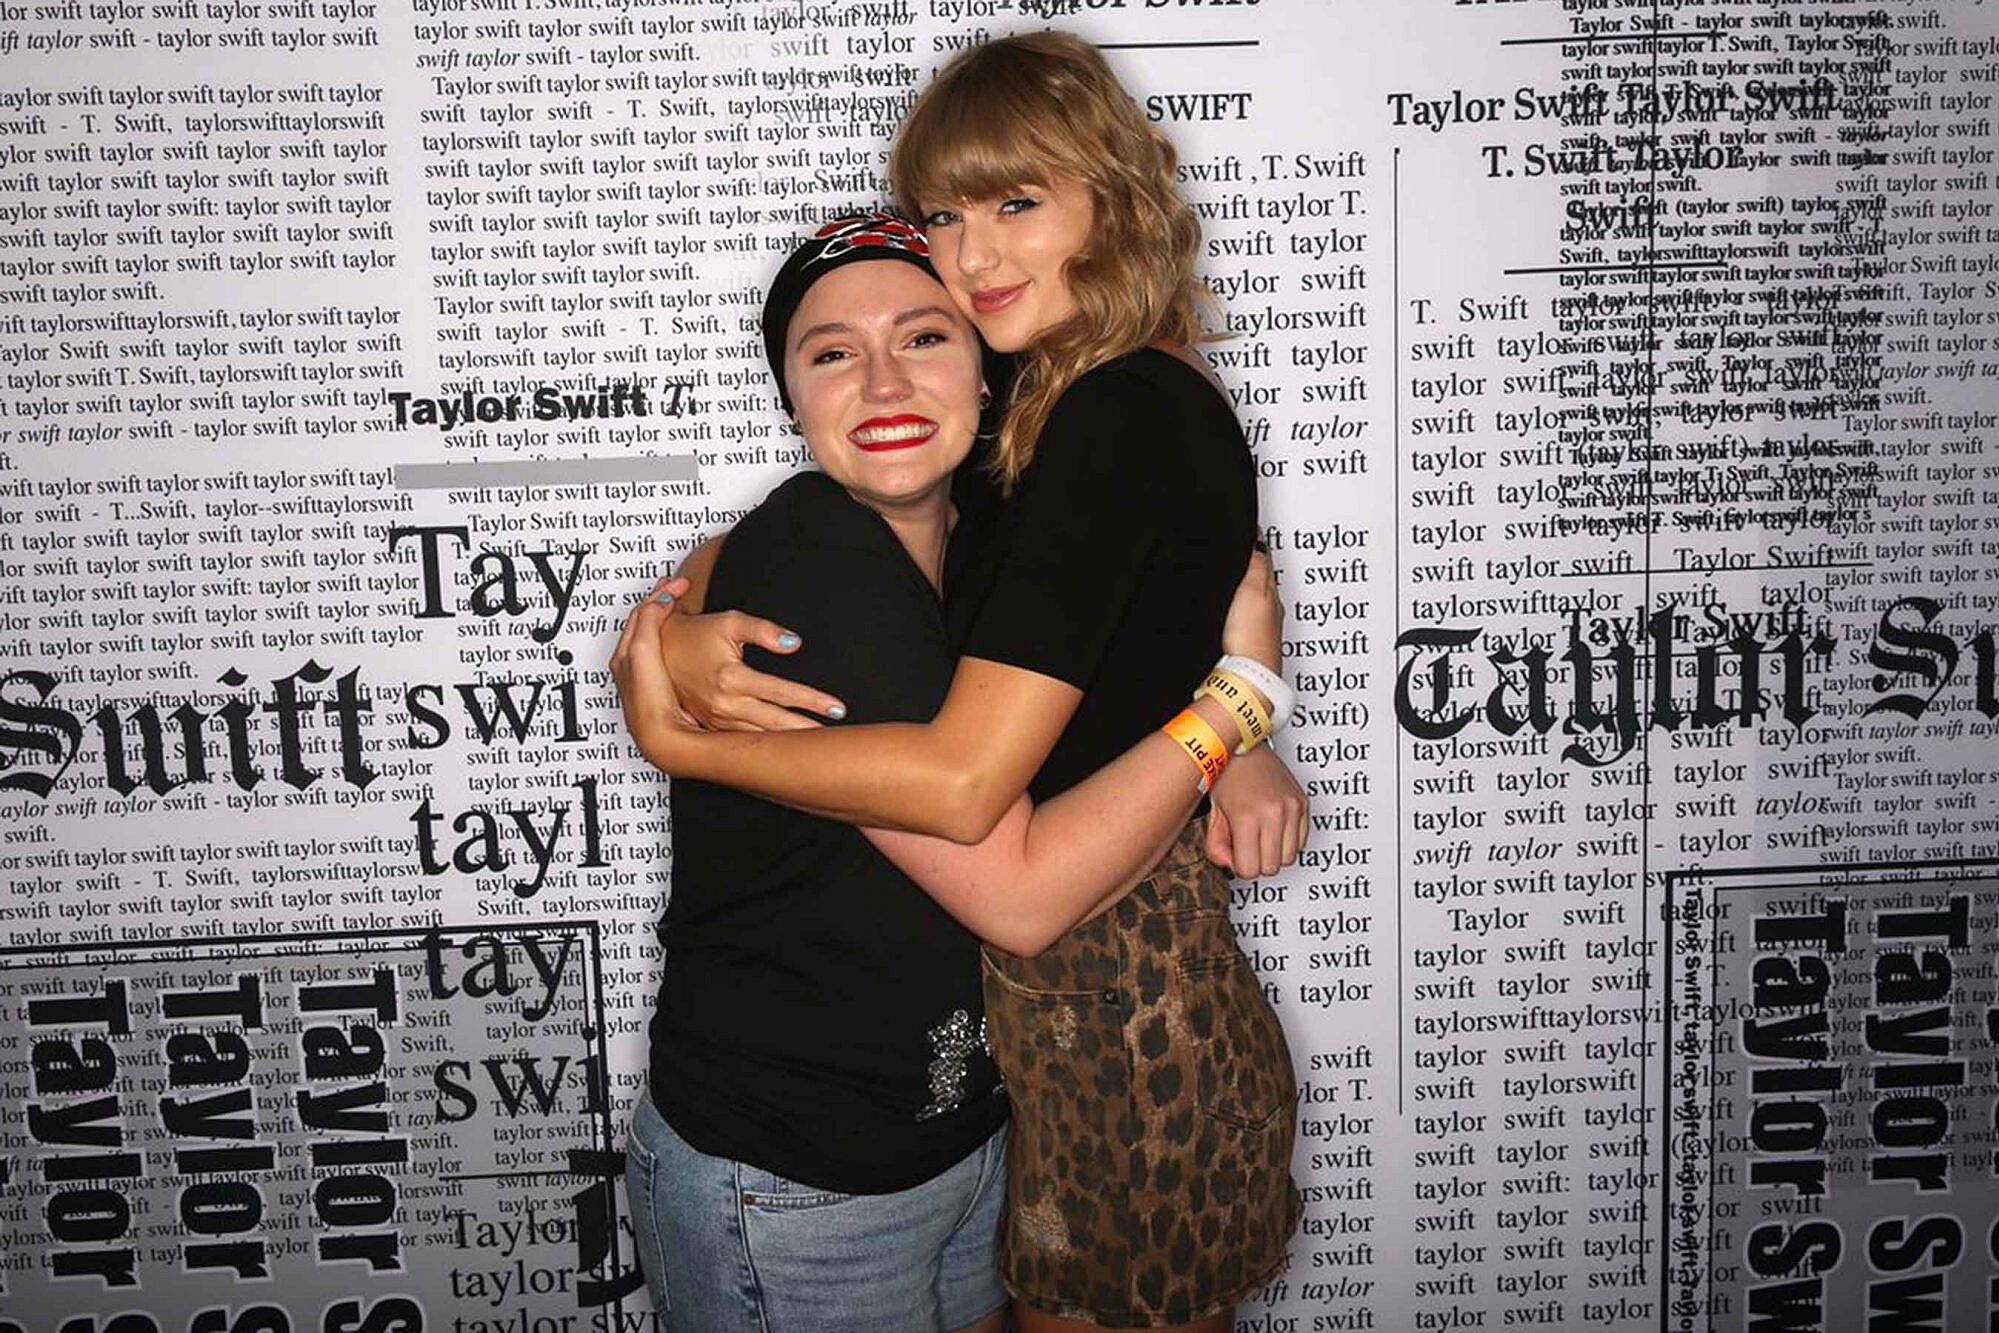 Taylor Swift Fan Surprises Gifts People Com